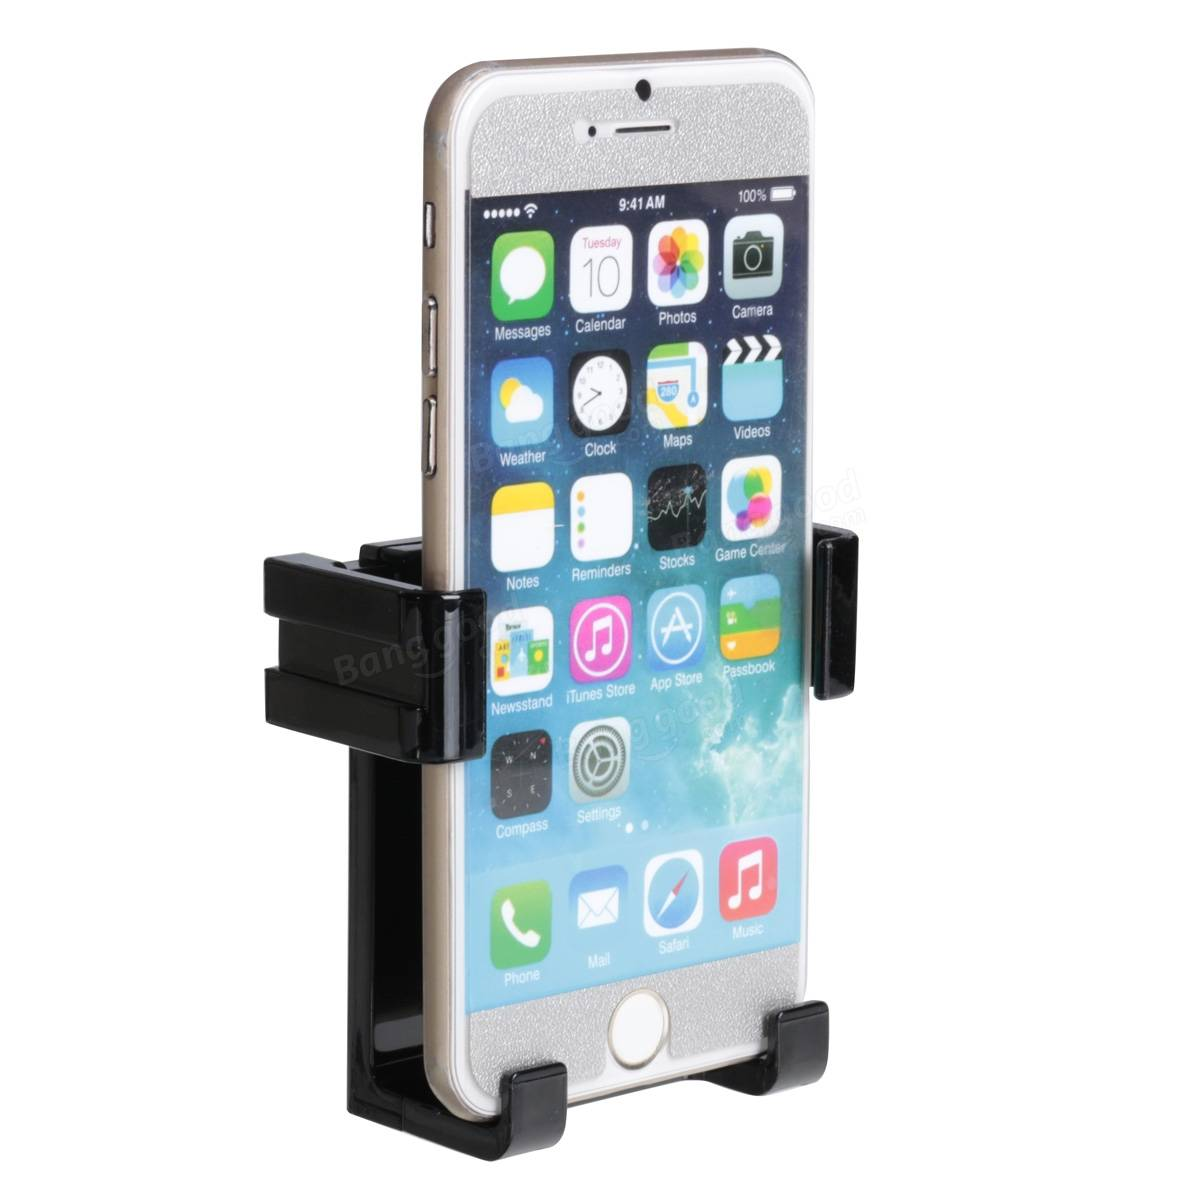 Universal Adjustable Car Air Vent Mount Holder Cradle Stand For Mobile Phones